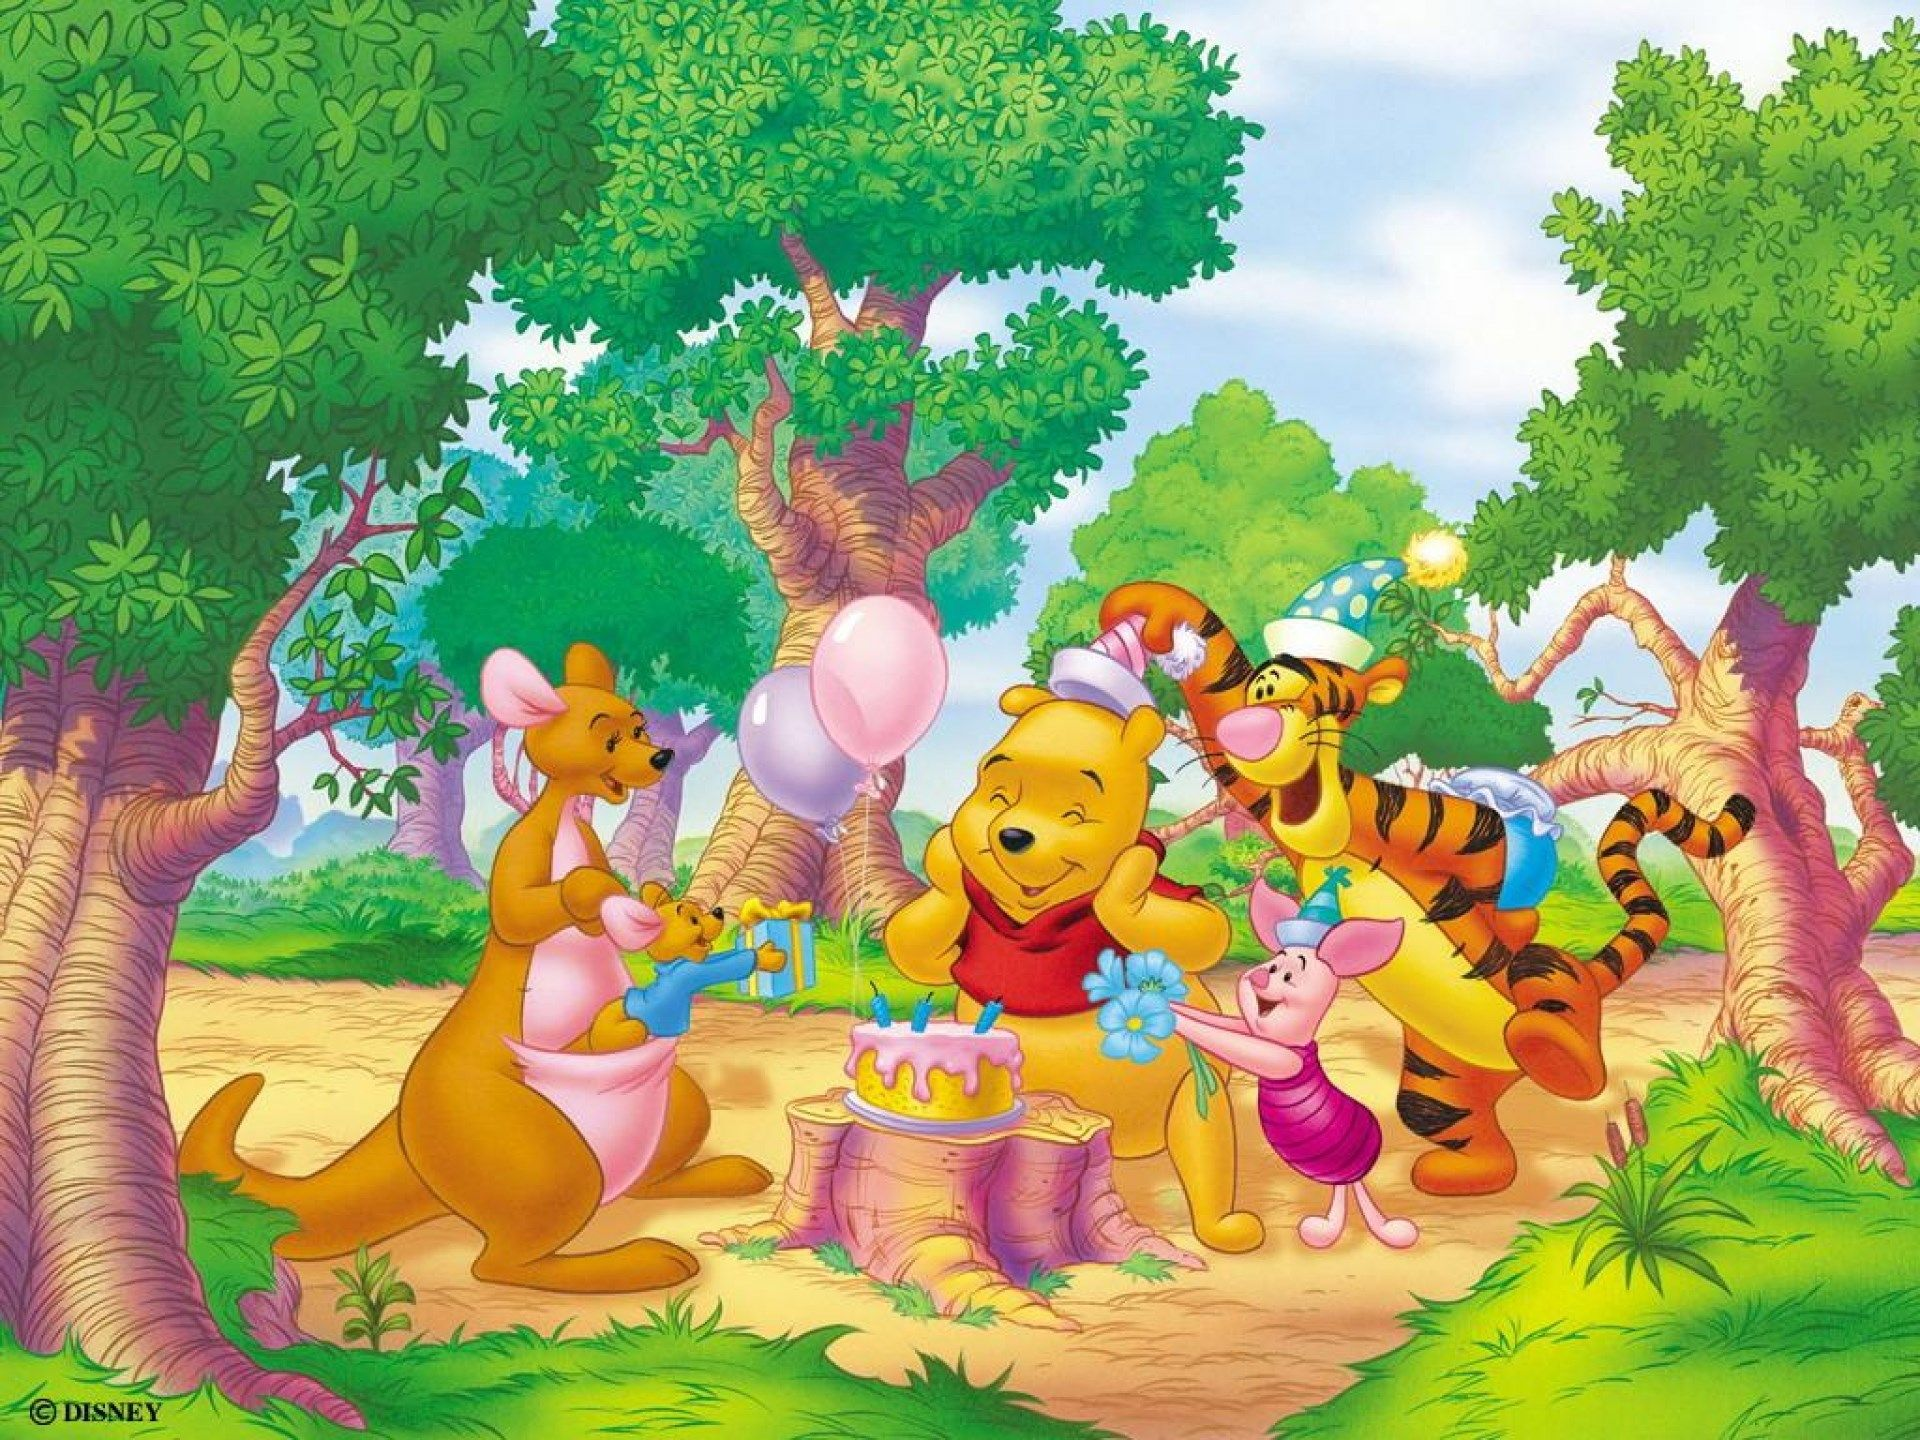 Winnie The Pooh Free Picture Backgrounds Winnie The Pooh Pictures Winnie The Pooh Cartoon Cute Winnie The Pooh